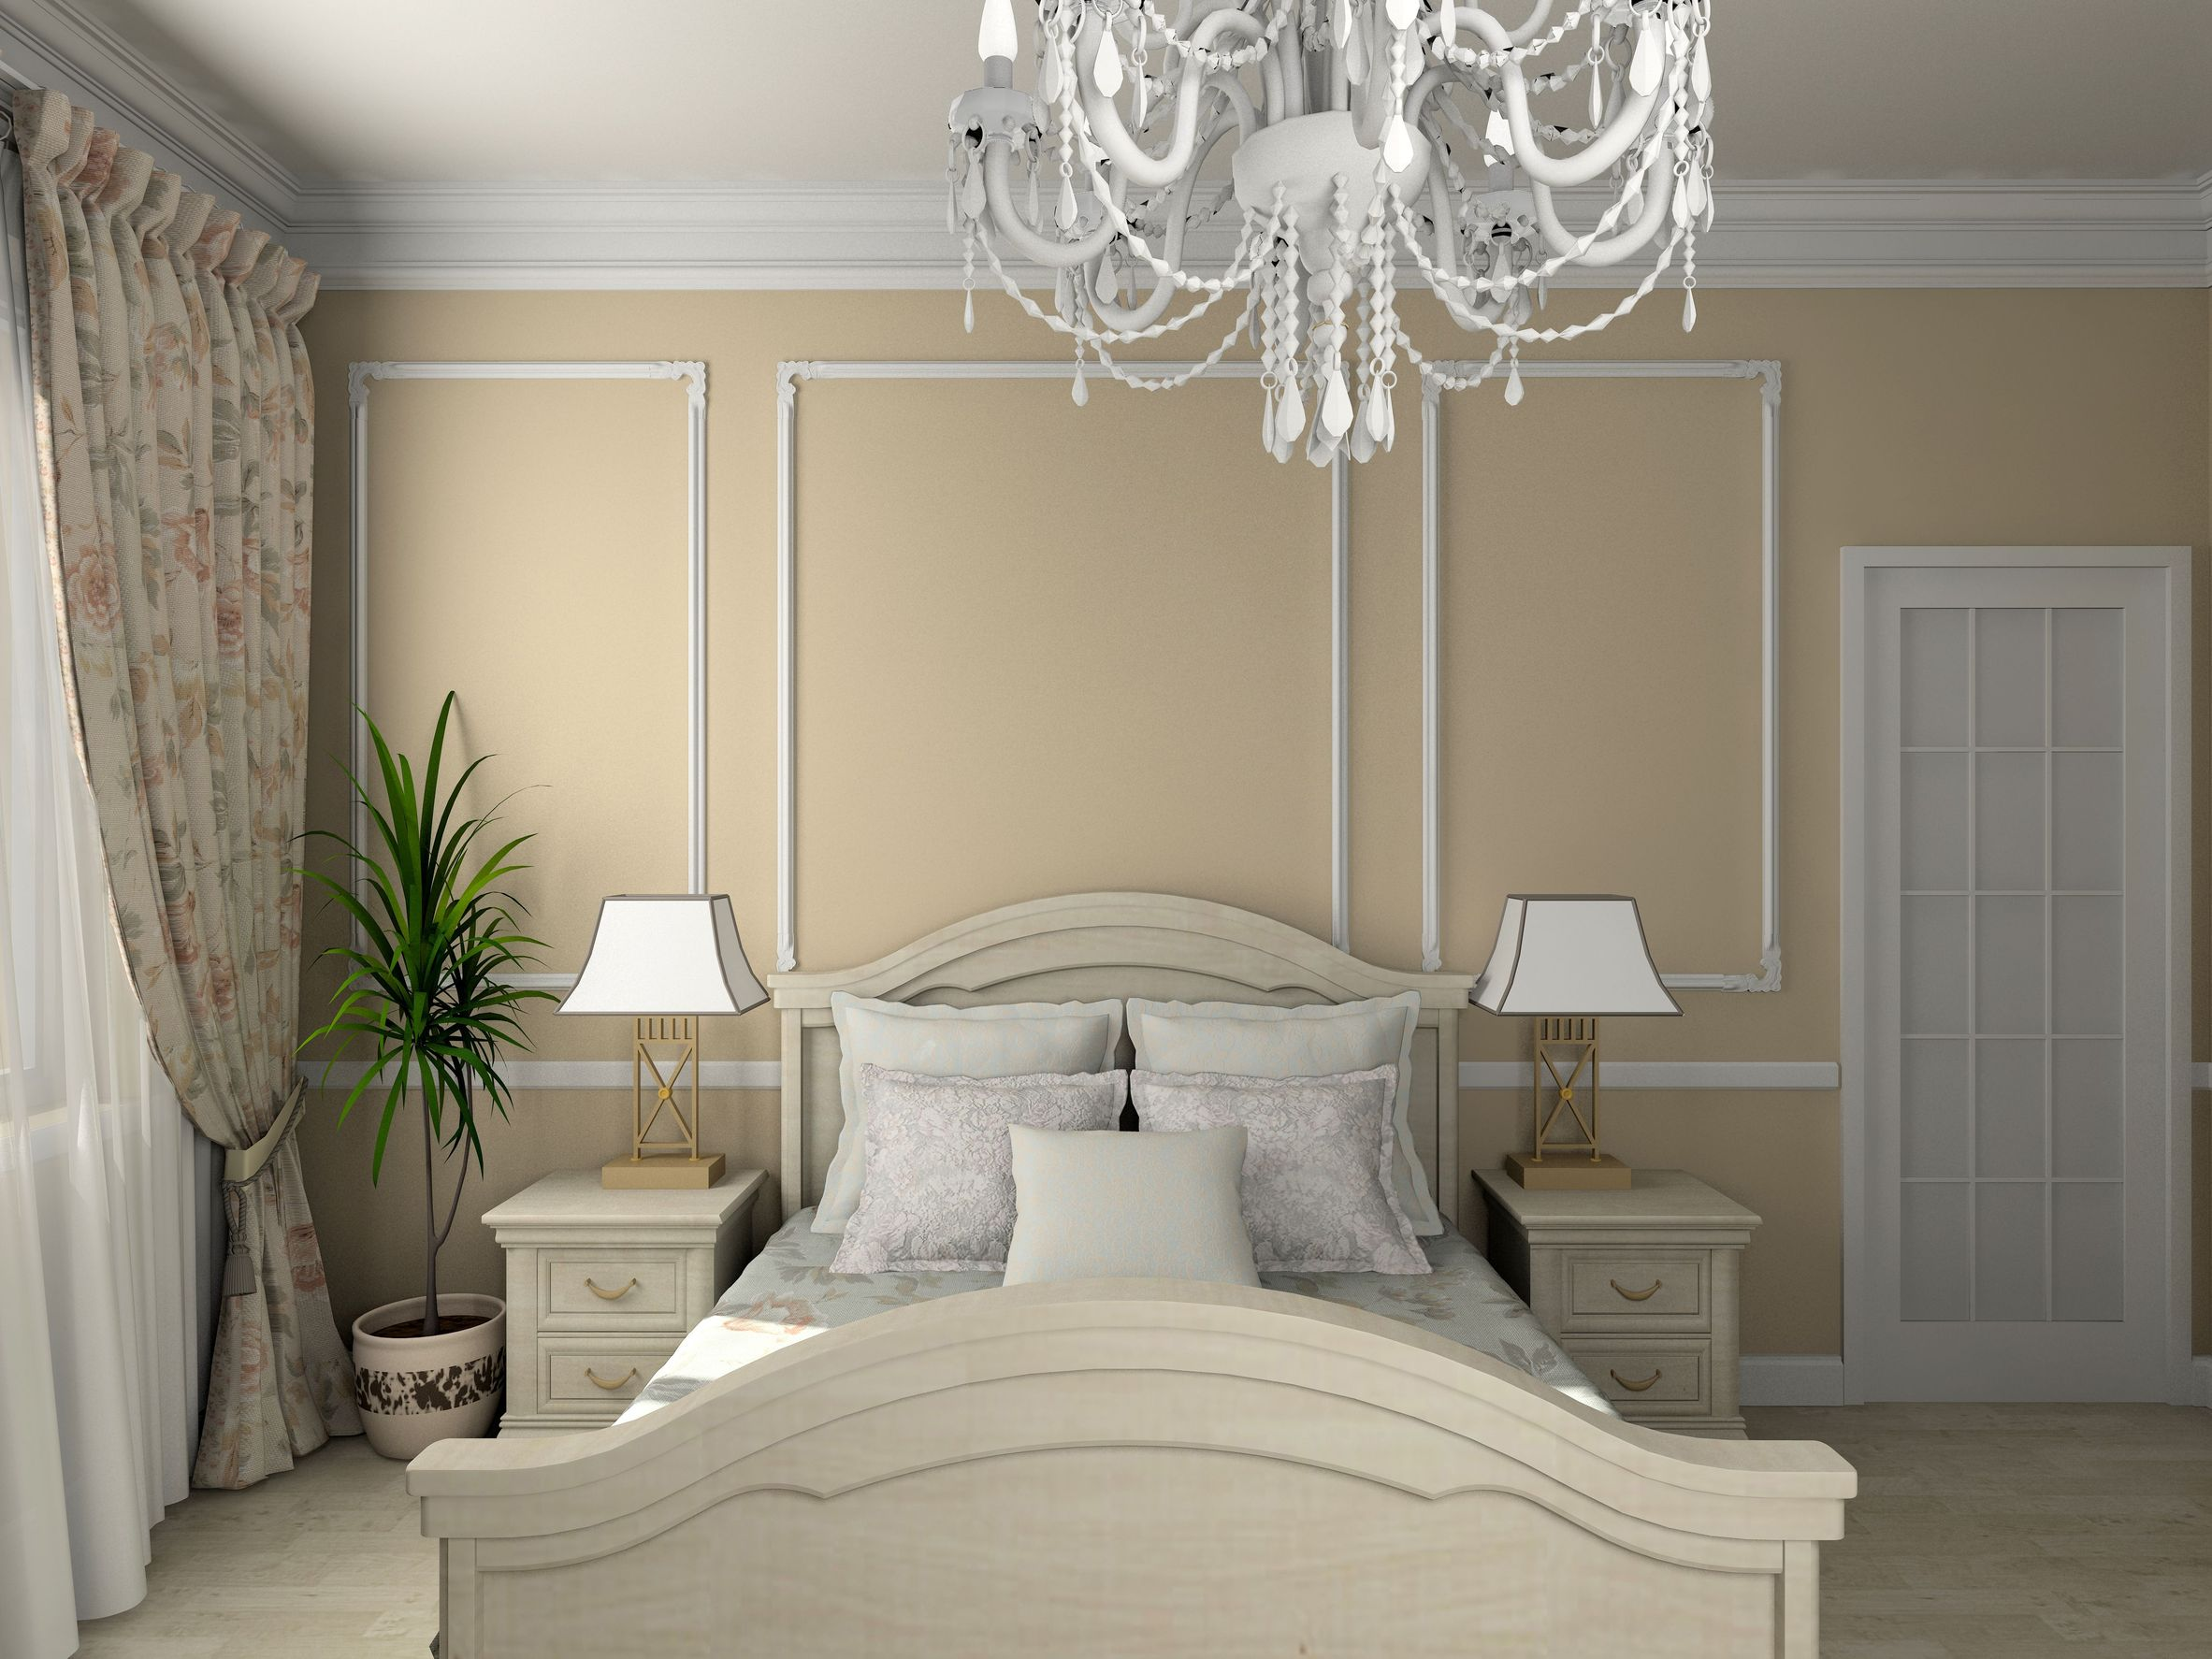 Bedroom chandelier ideas large and beautiful photos for Bedroom chandelier ideas